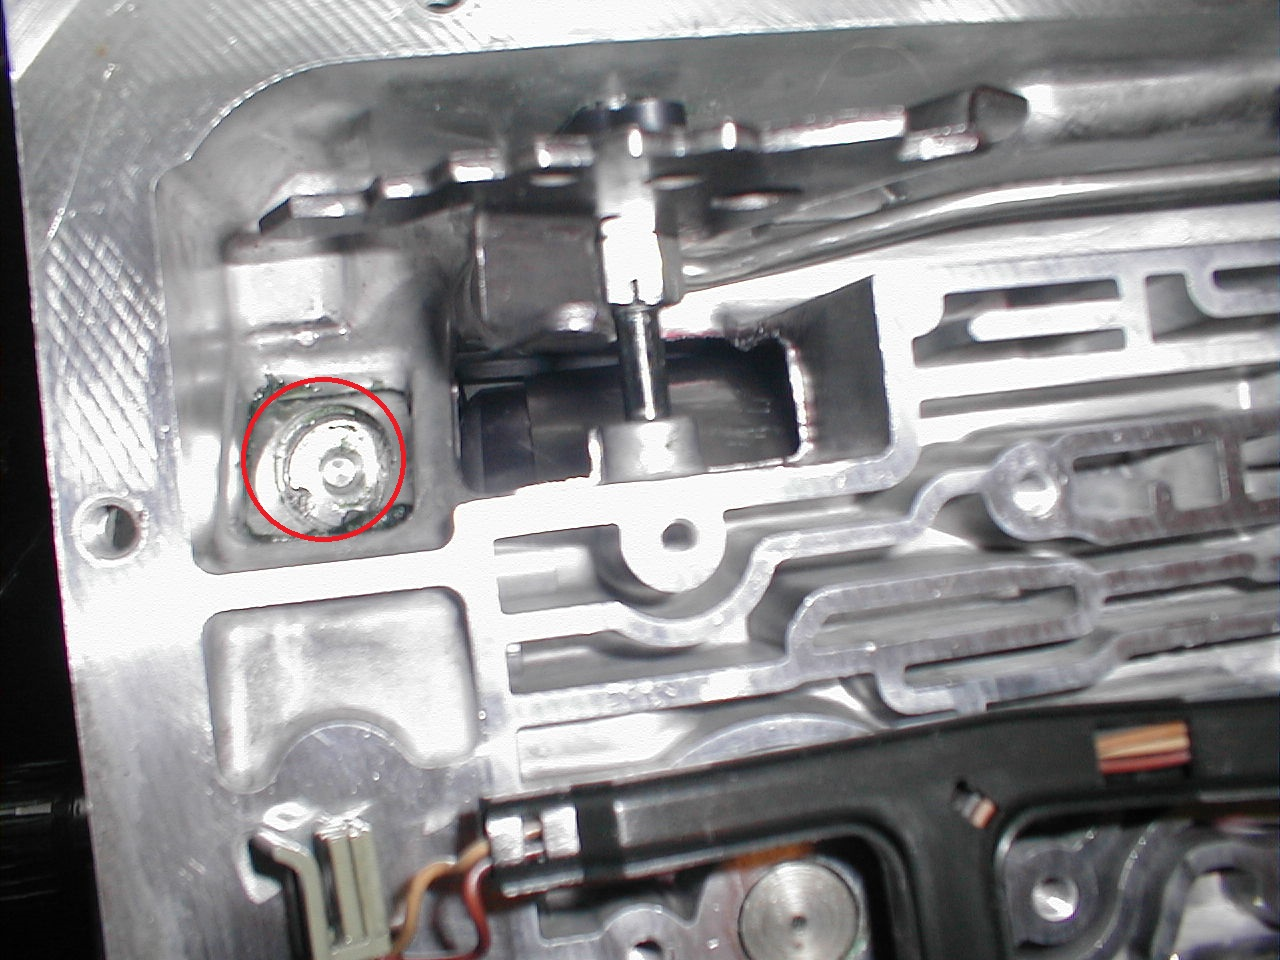 hight resolution of 4l60e boost valve location pulling my hair out boost valve jpg